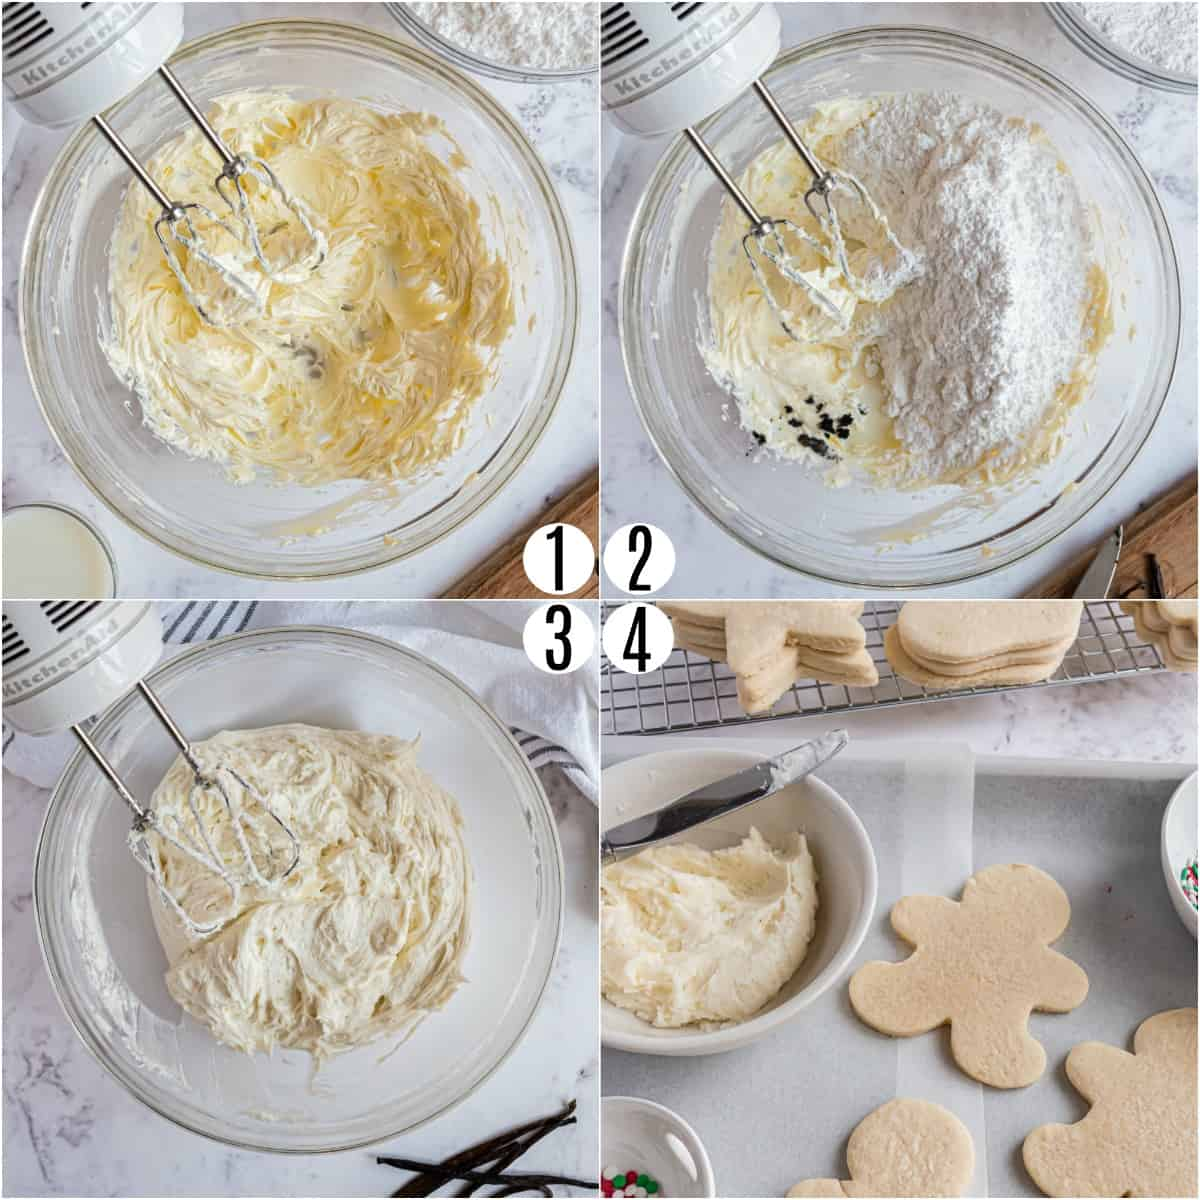 Step by step photos showing how to make vanilla bean frosting.